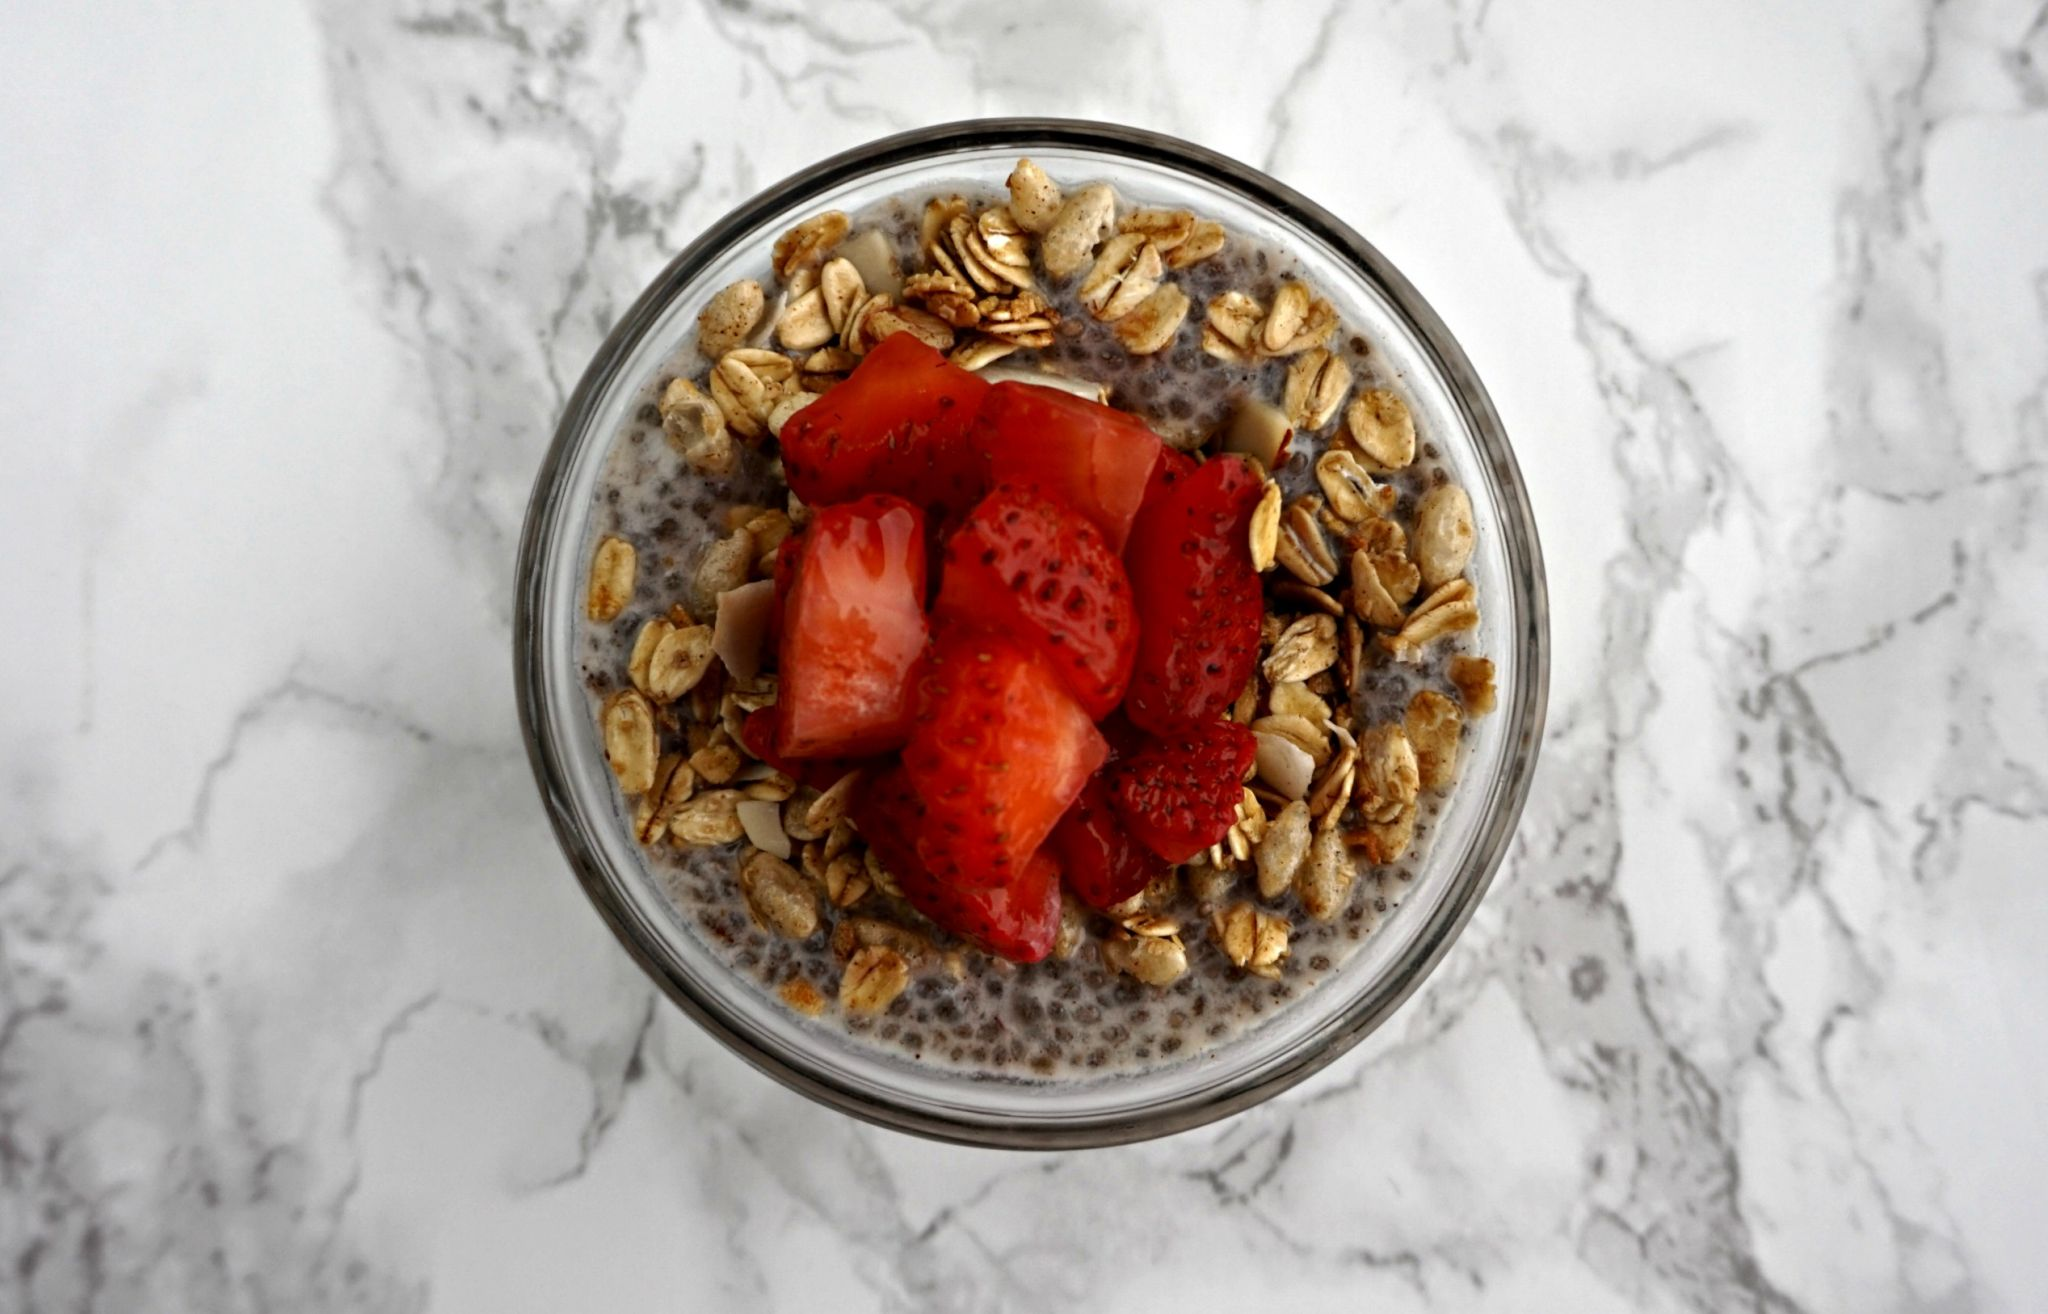 Quick & Easy Breakfast - Strawberry Chia Pudding // Healthy Breakfast // Breakfast Meal Prep | Beauty With Lily